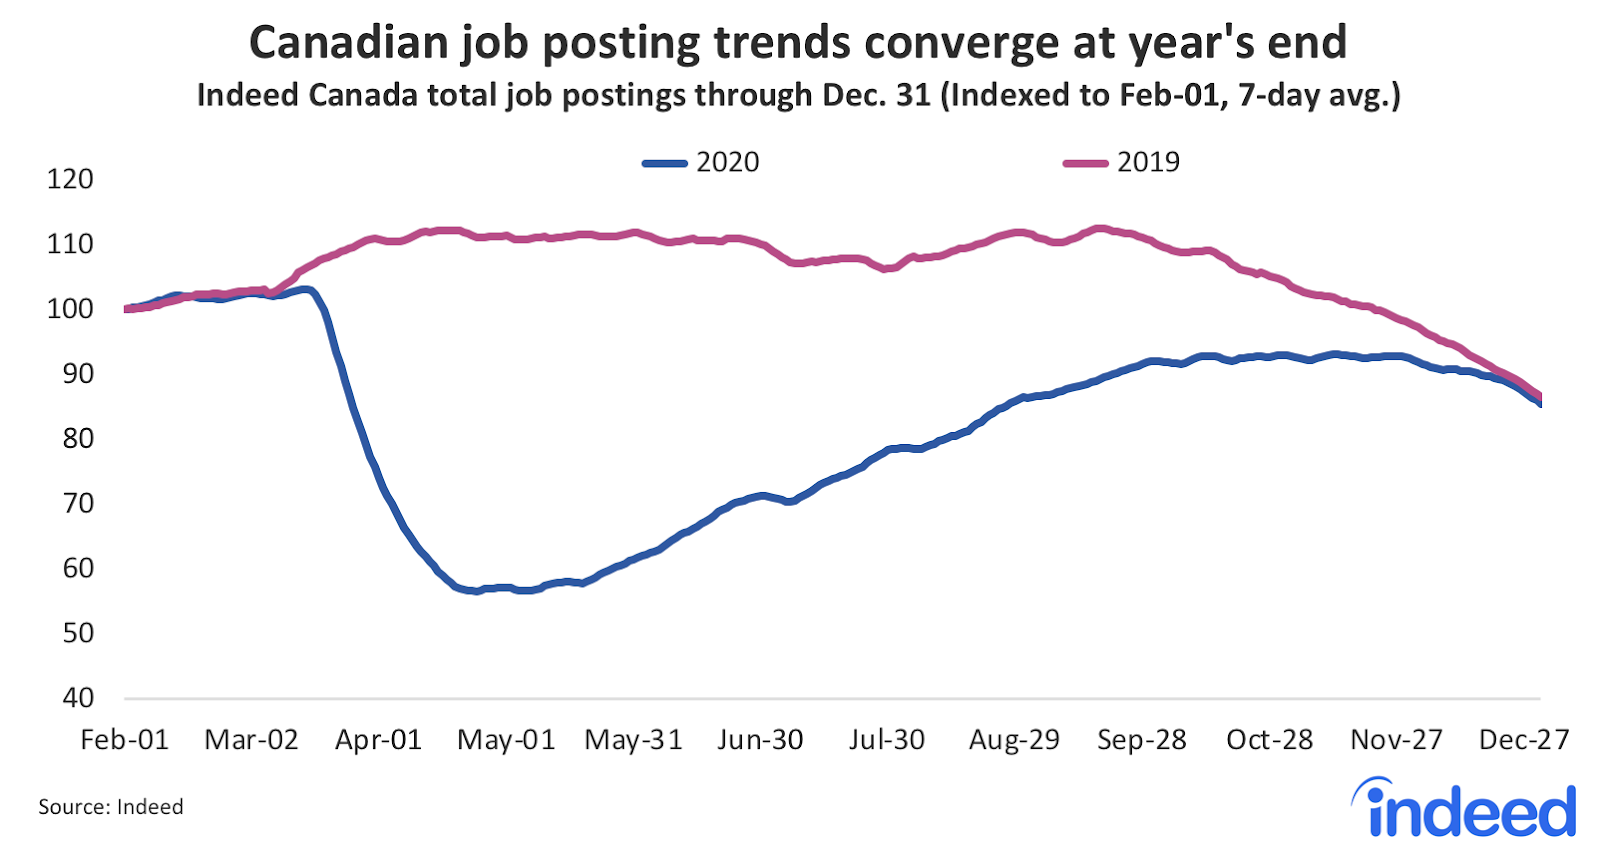 Line graph showing Canadian job postings trends converge at year's end